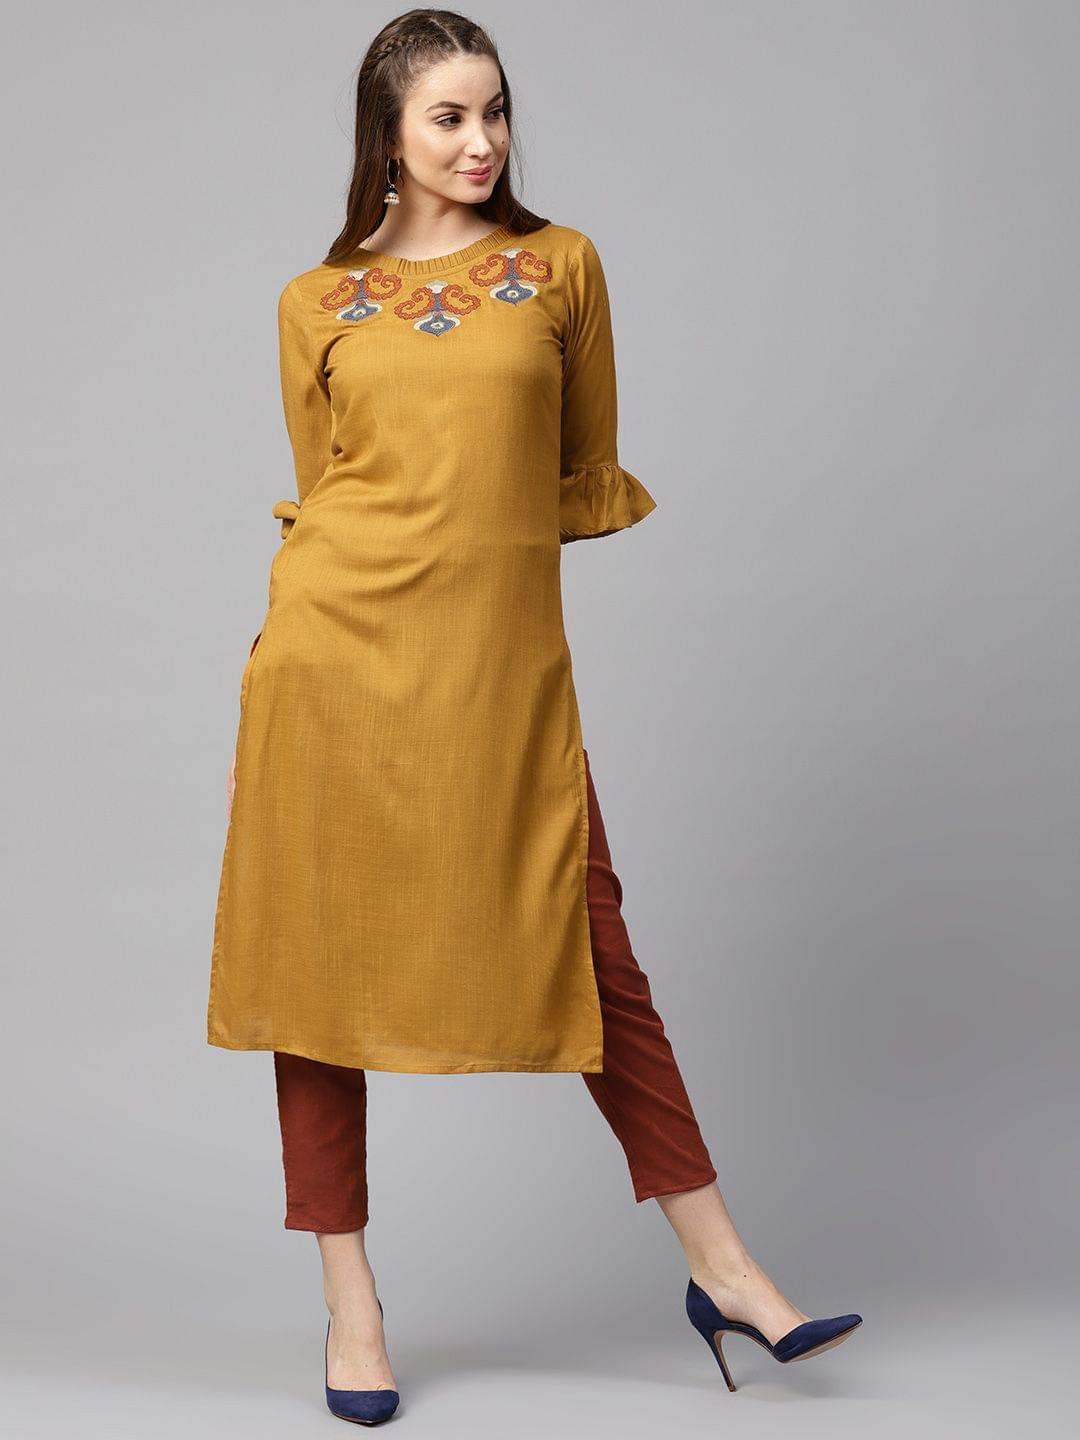 Yufta Women Mustard Yellow & Rust Red Yoke Design Kurta with Trousers